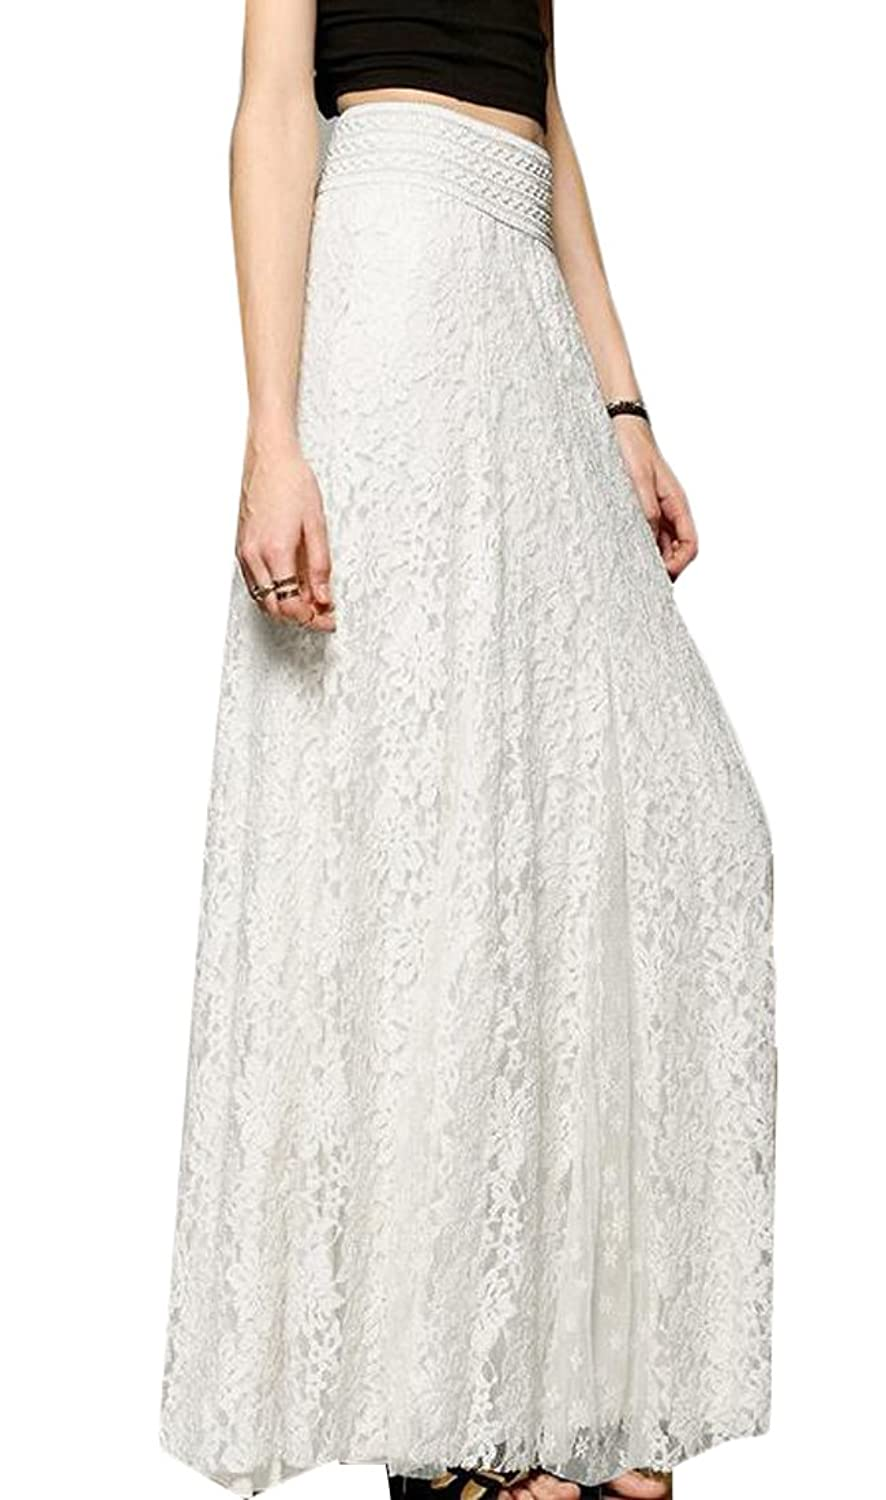 KXP Womens Summer Solid Lace High Waist Fashion Maxi Long Skirt